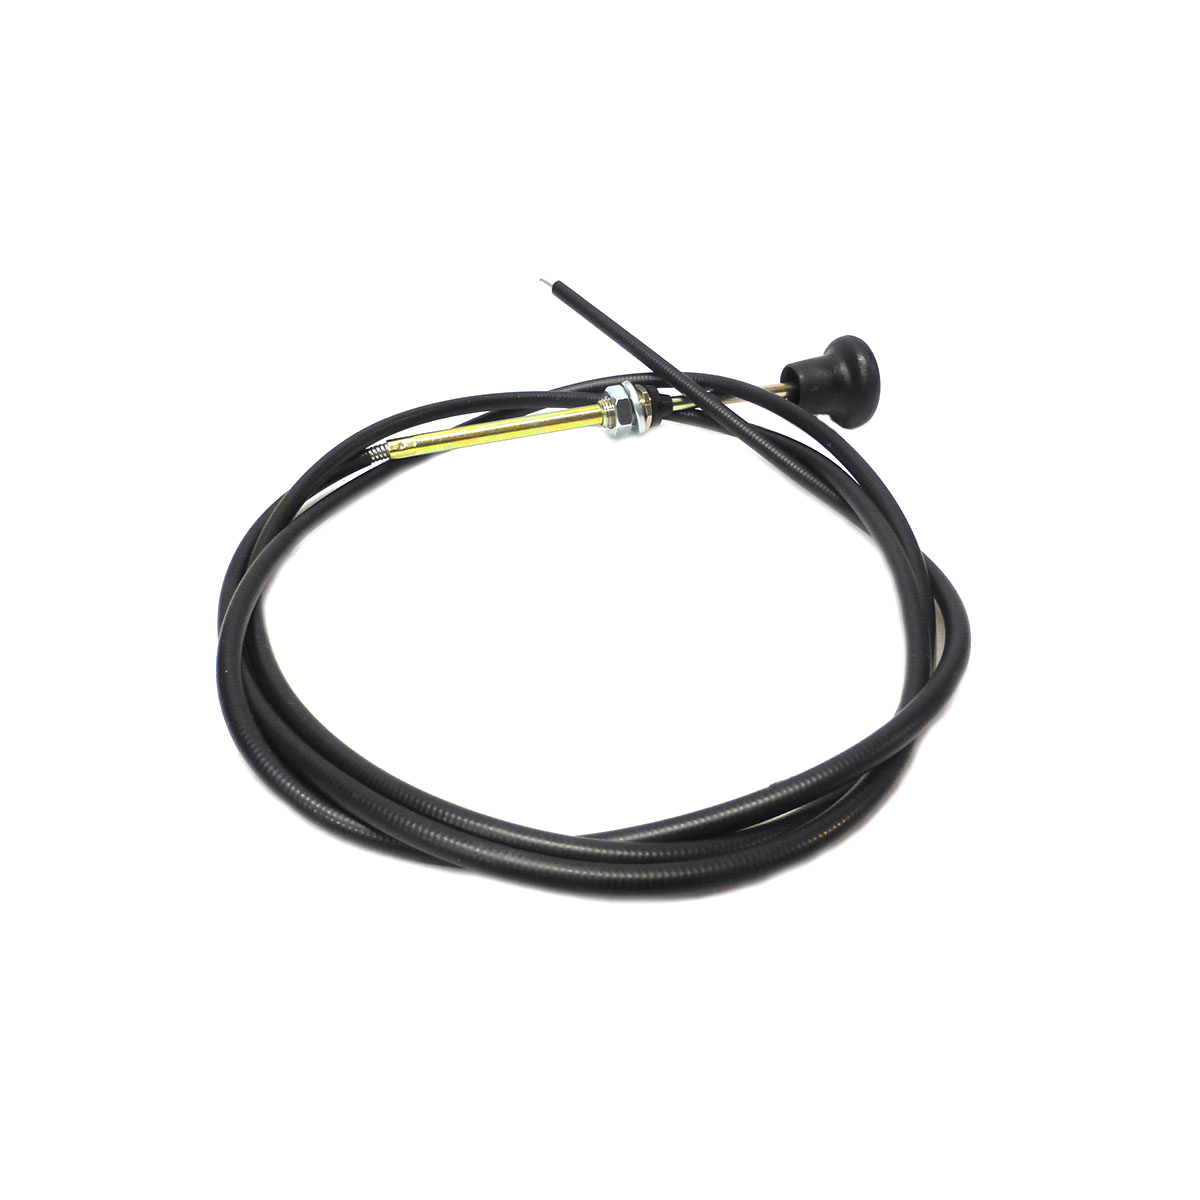 Choke Cables for Dixie Chopper Lawn Mowers